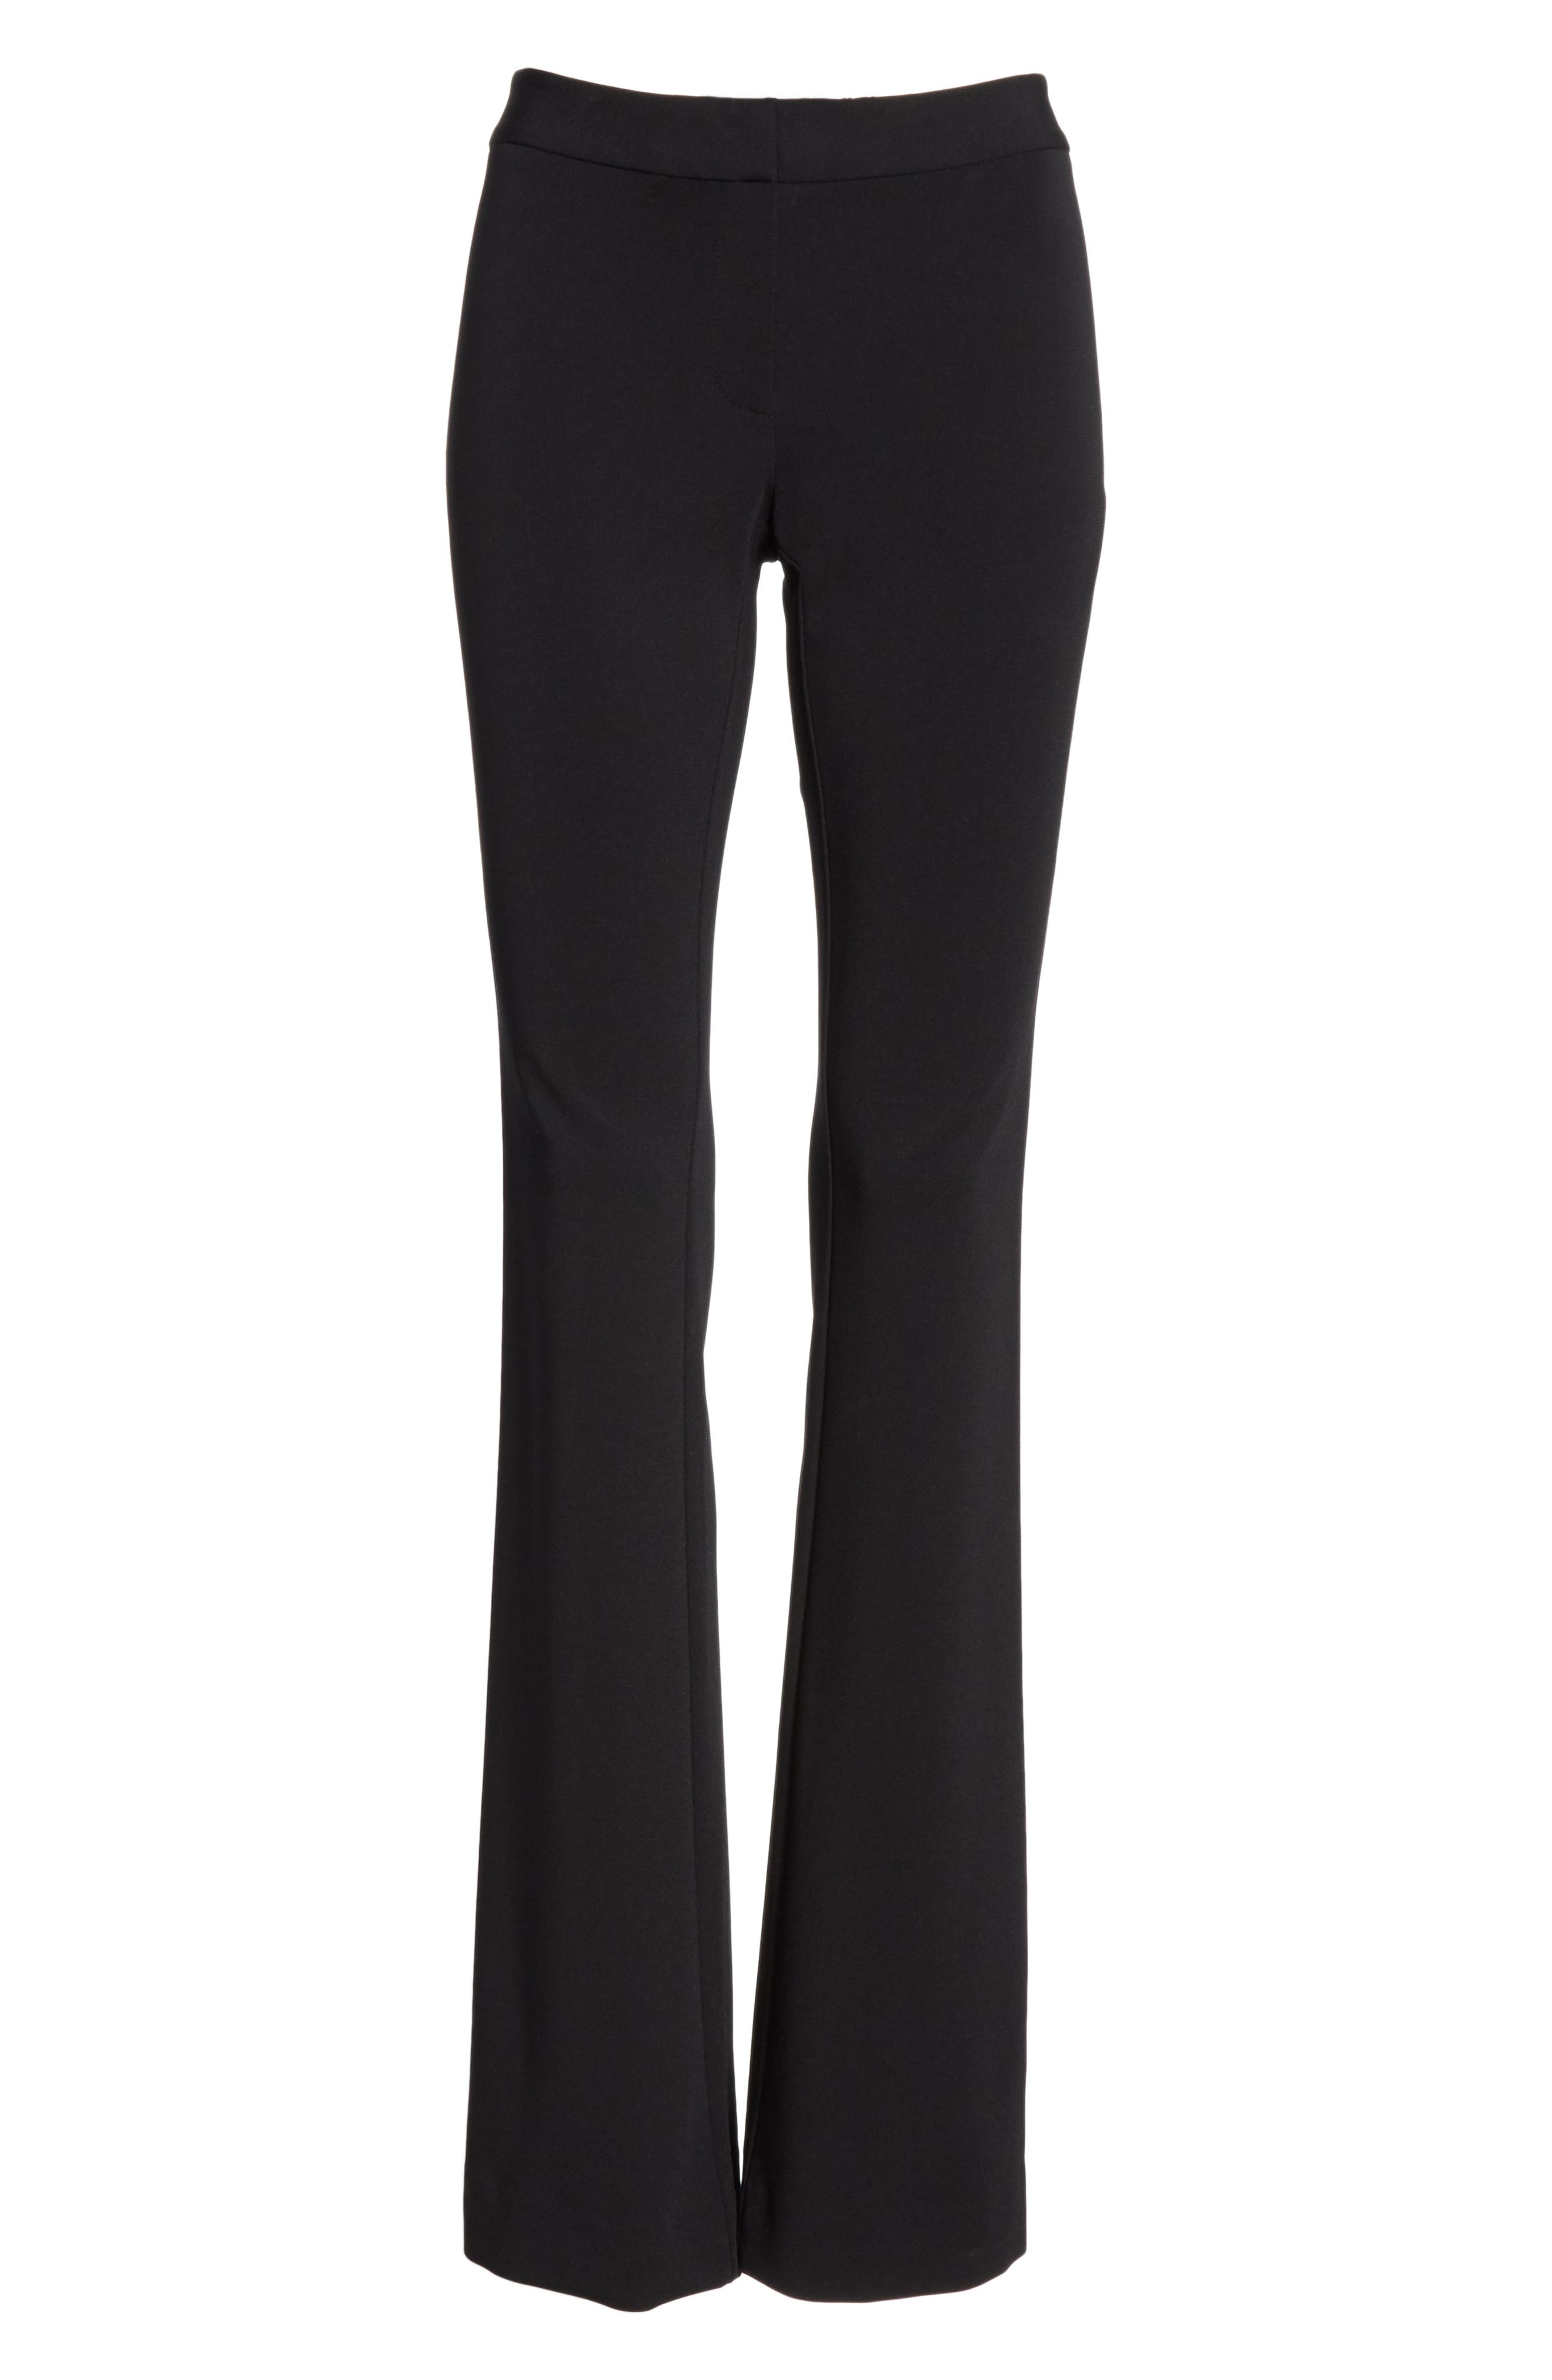 LAFAYETTE 148 NEW YORK,                             Waldorf Flare Pants,                             Alternate thumbnail 6, color,                             BLACK